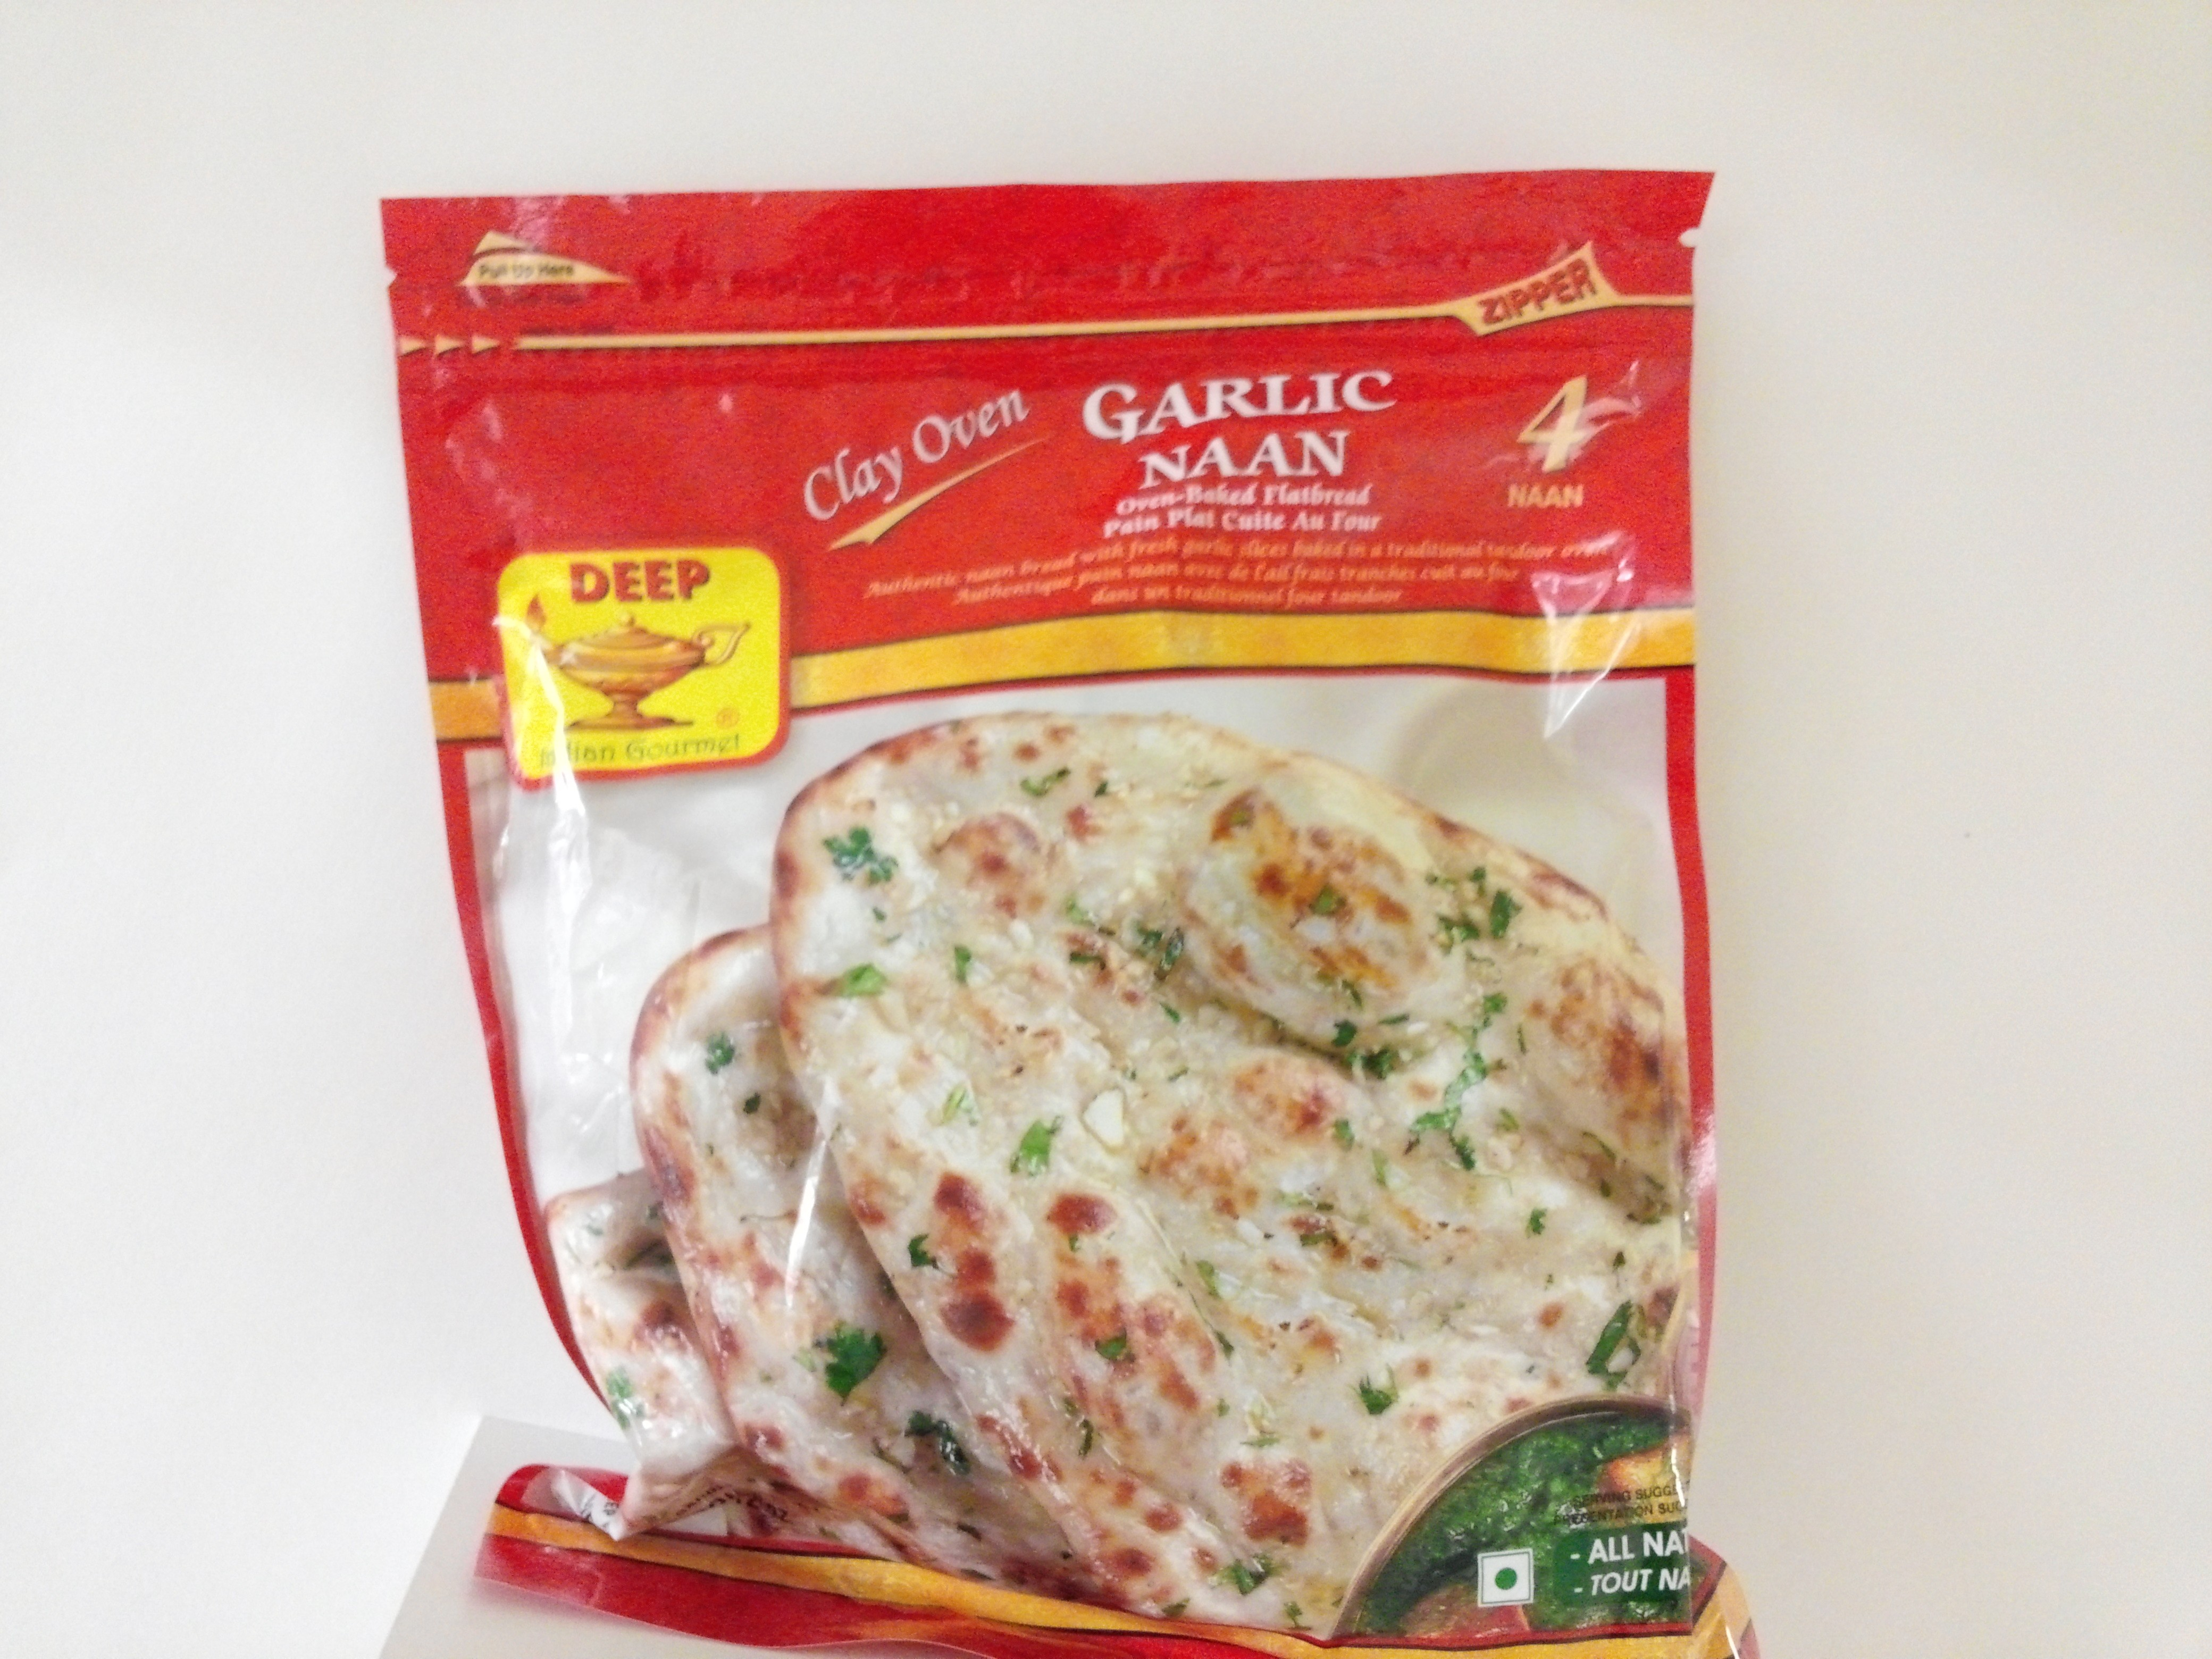 Deep Garlic Naan 4 pcs 12 oz